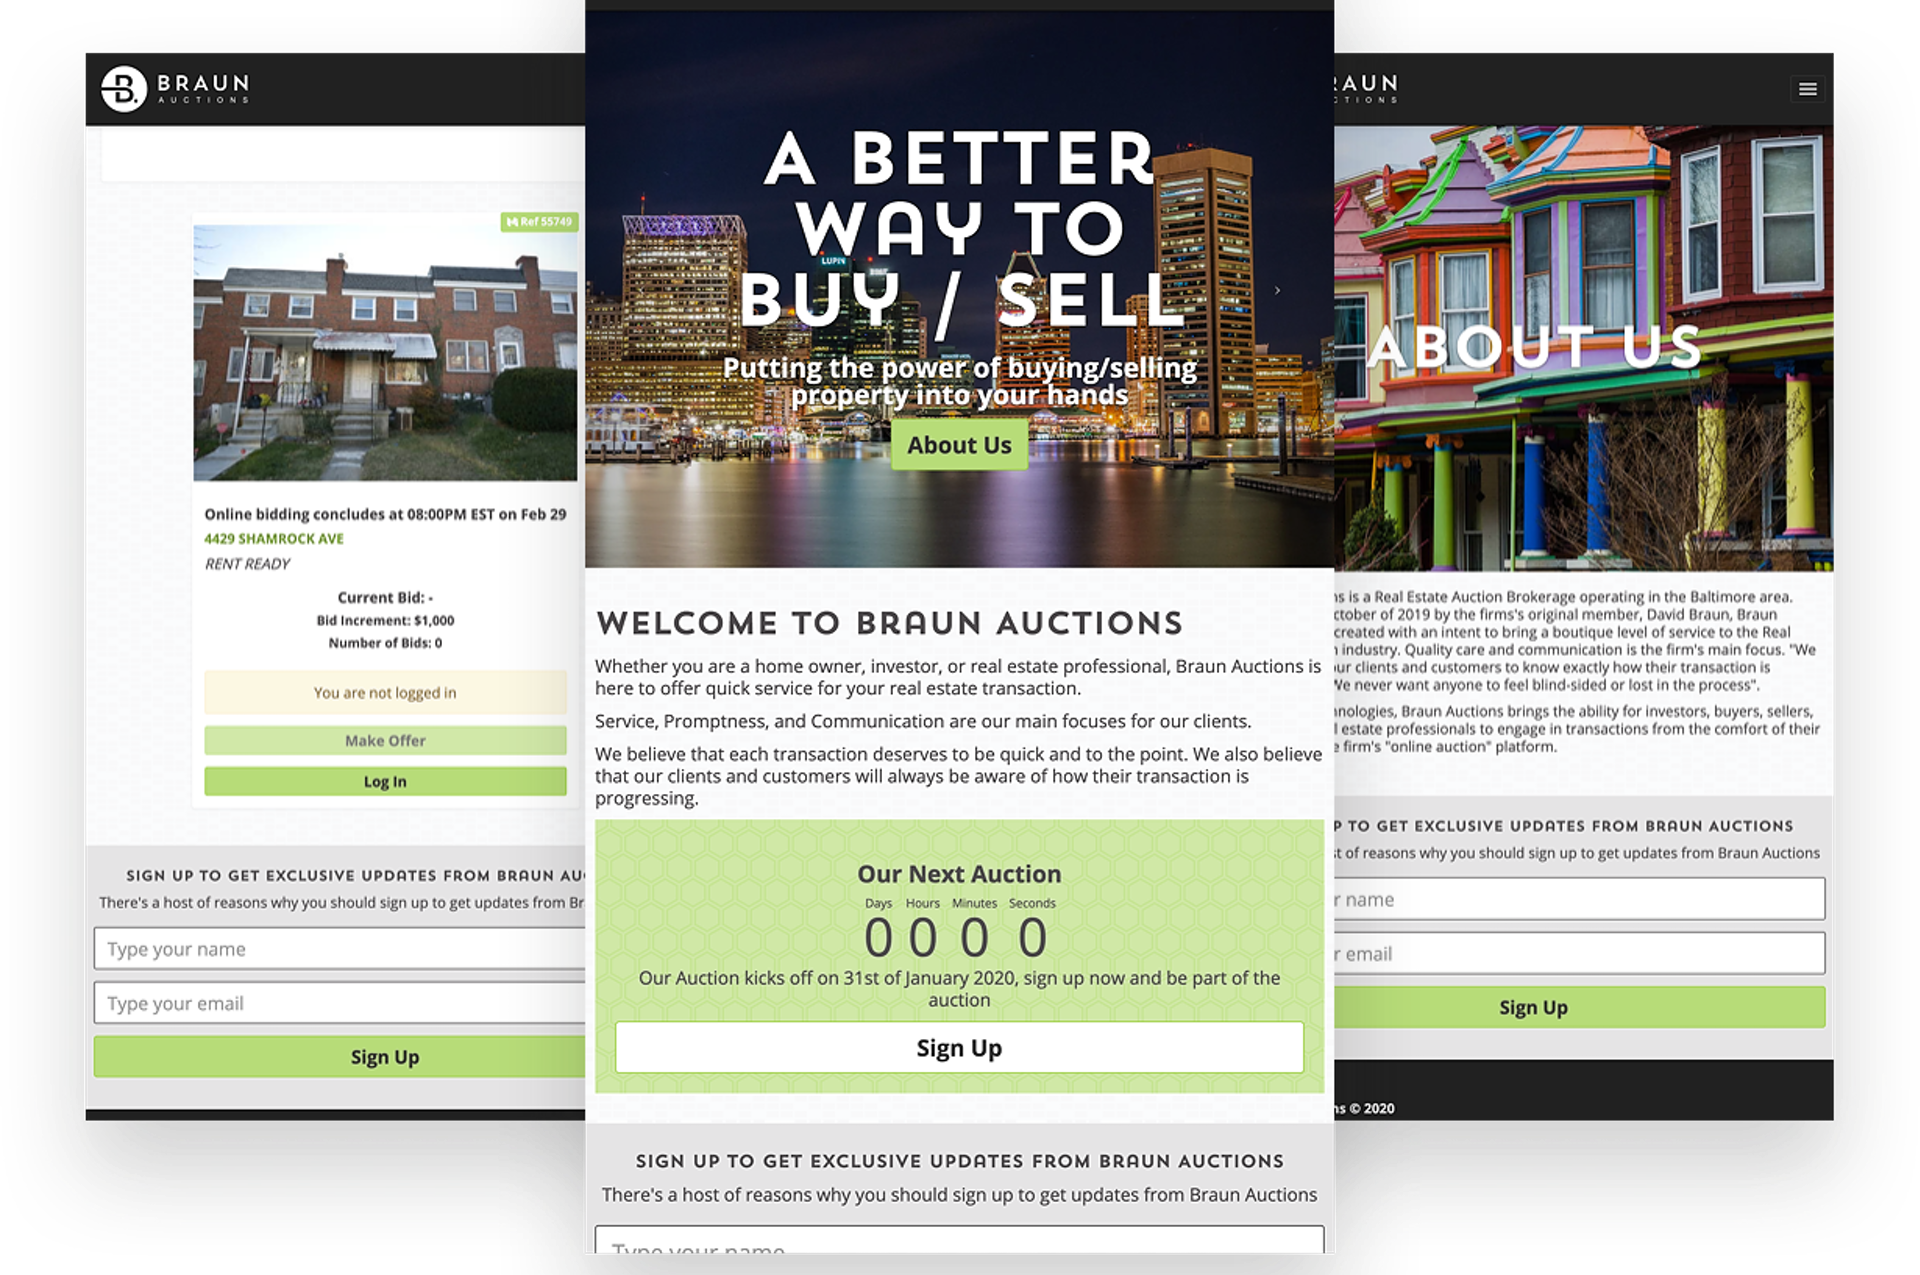 Mobile view of the Braun Auctions website